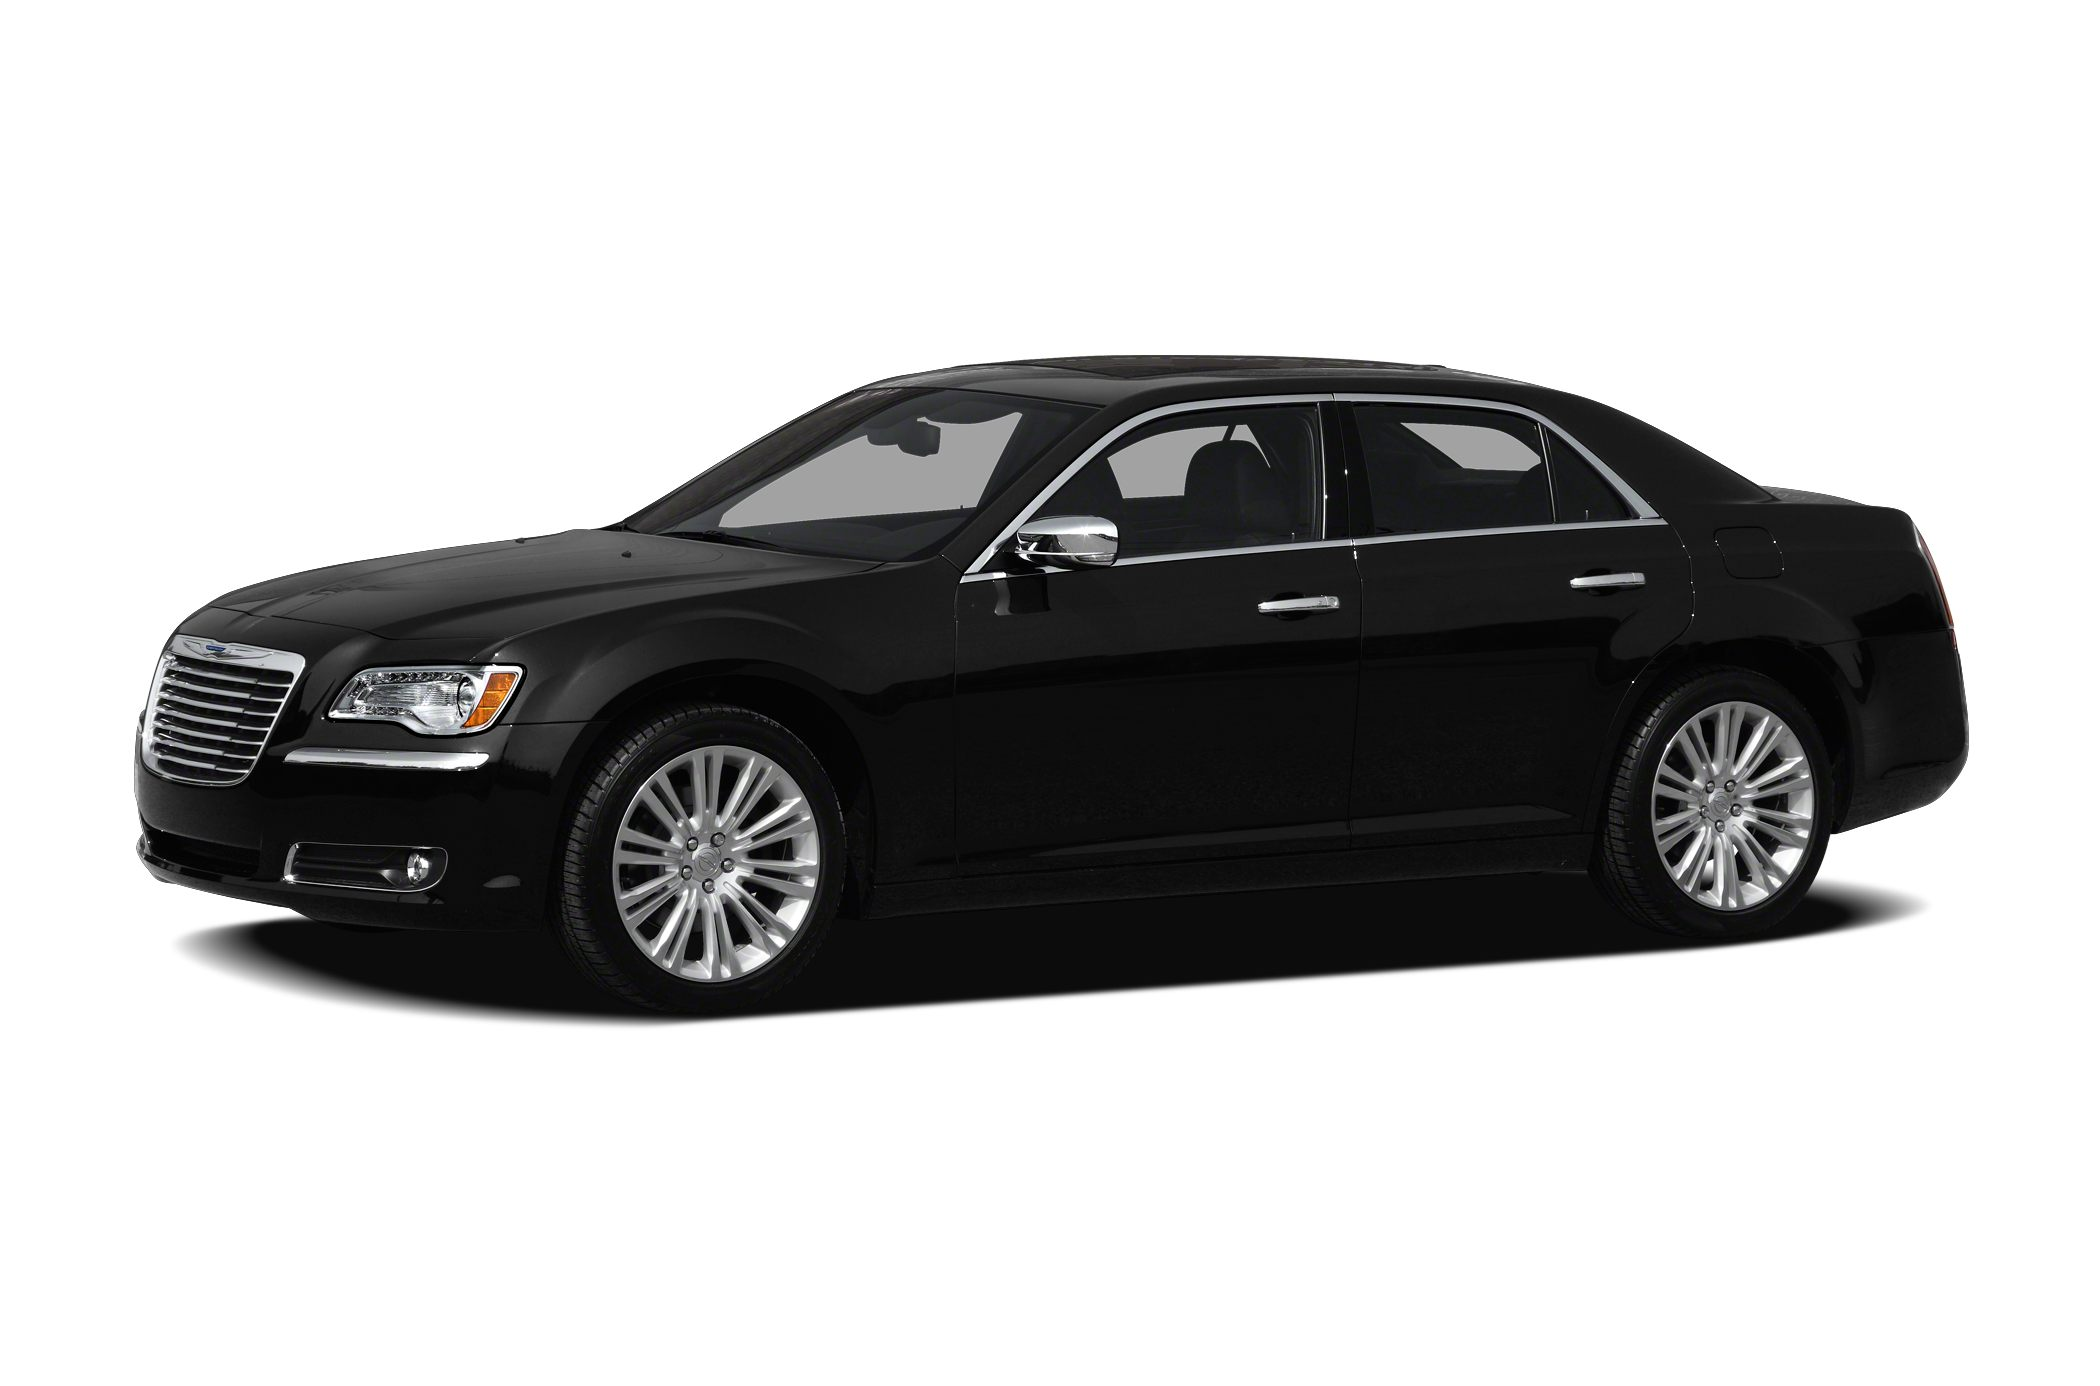 2011 Chrysler 300 Base Sedan for sale in Toccoa for $0 with 56,808 miles